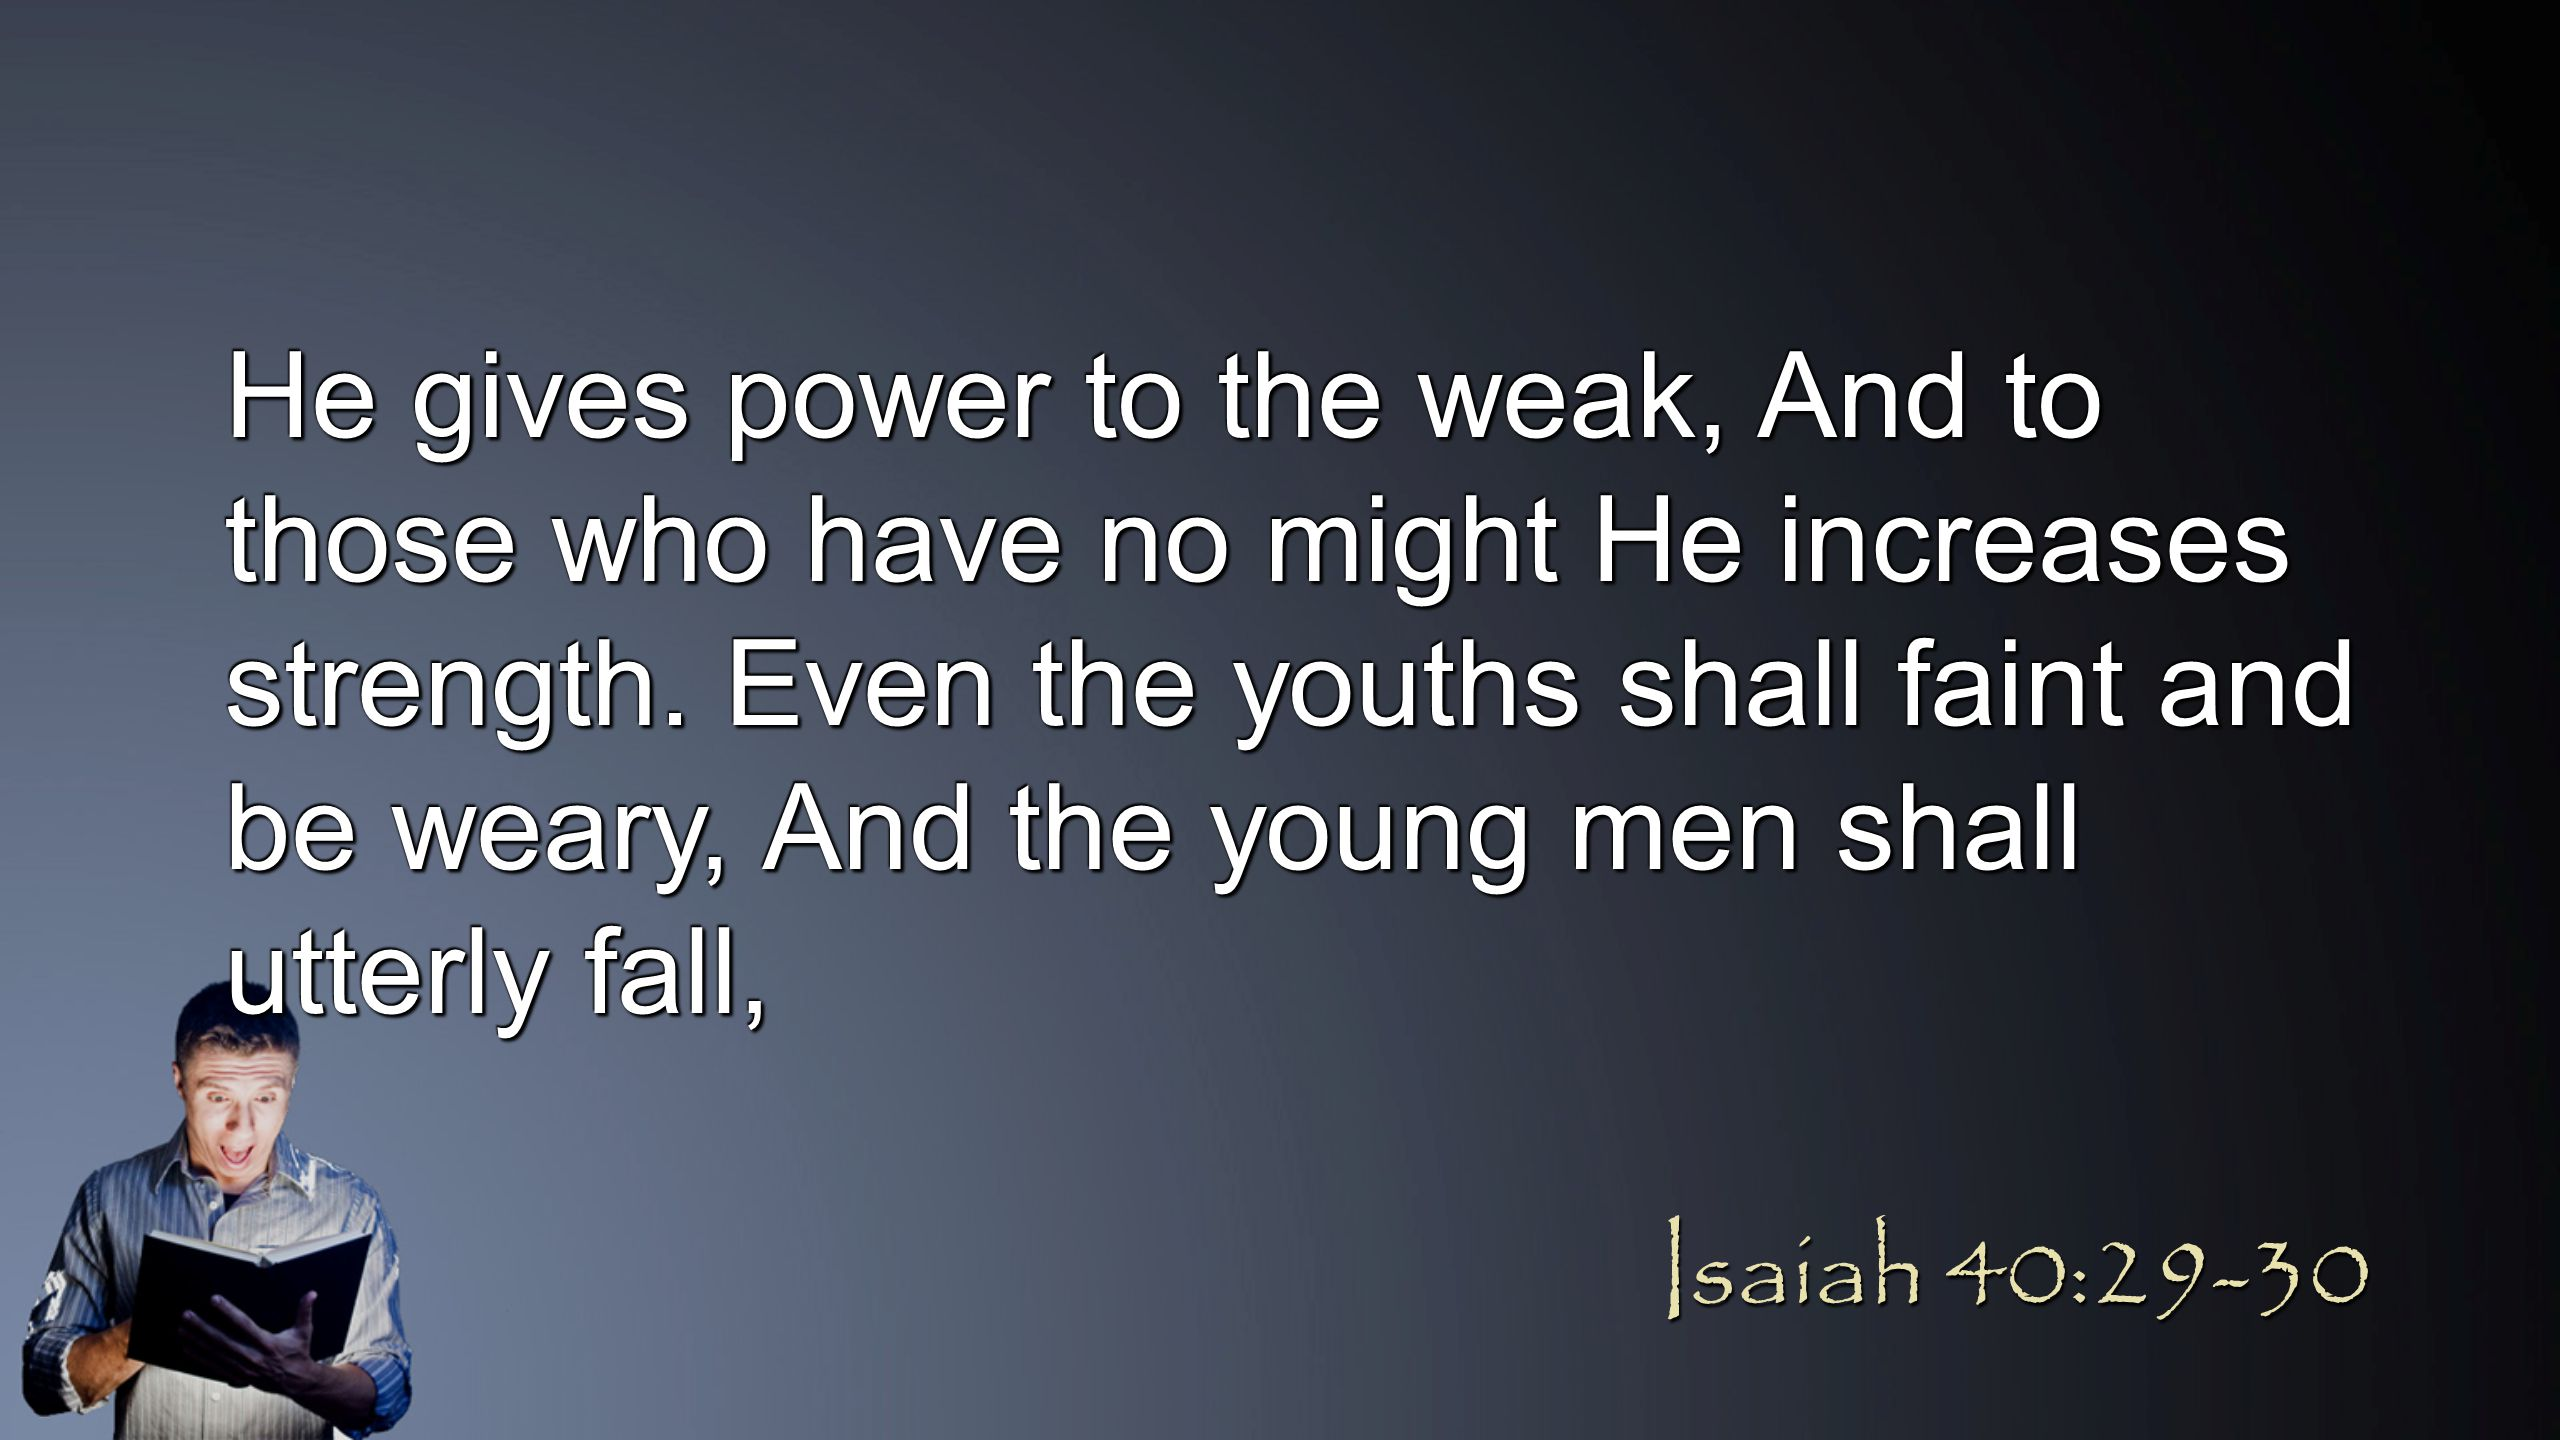 He gives power to the weak, And to those who have no might He increases strength.